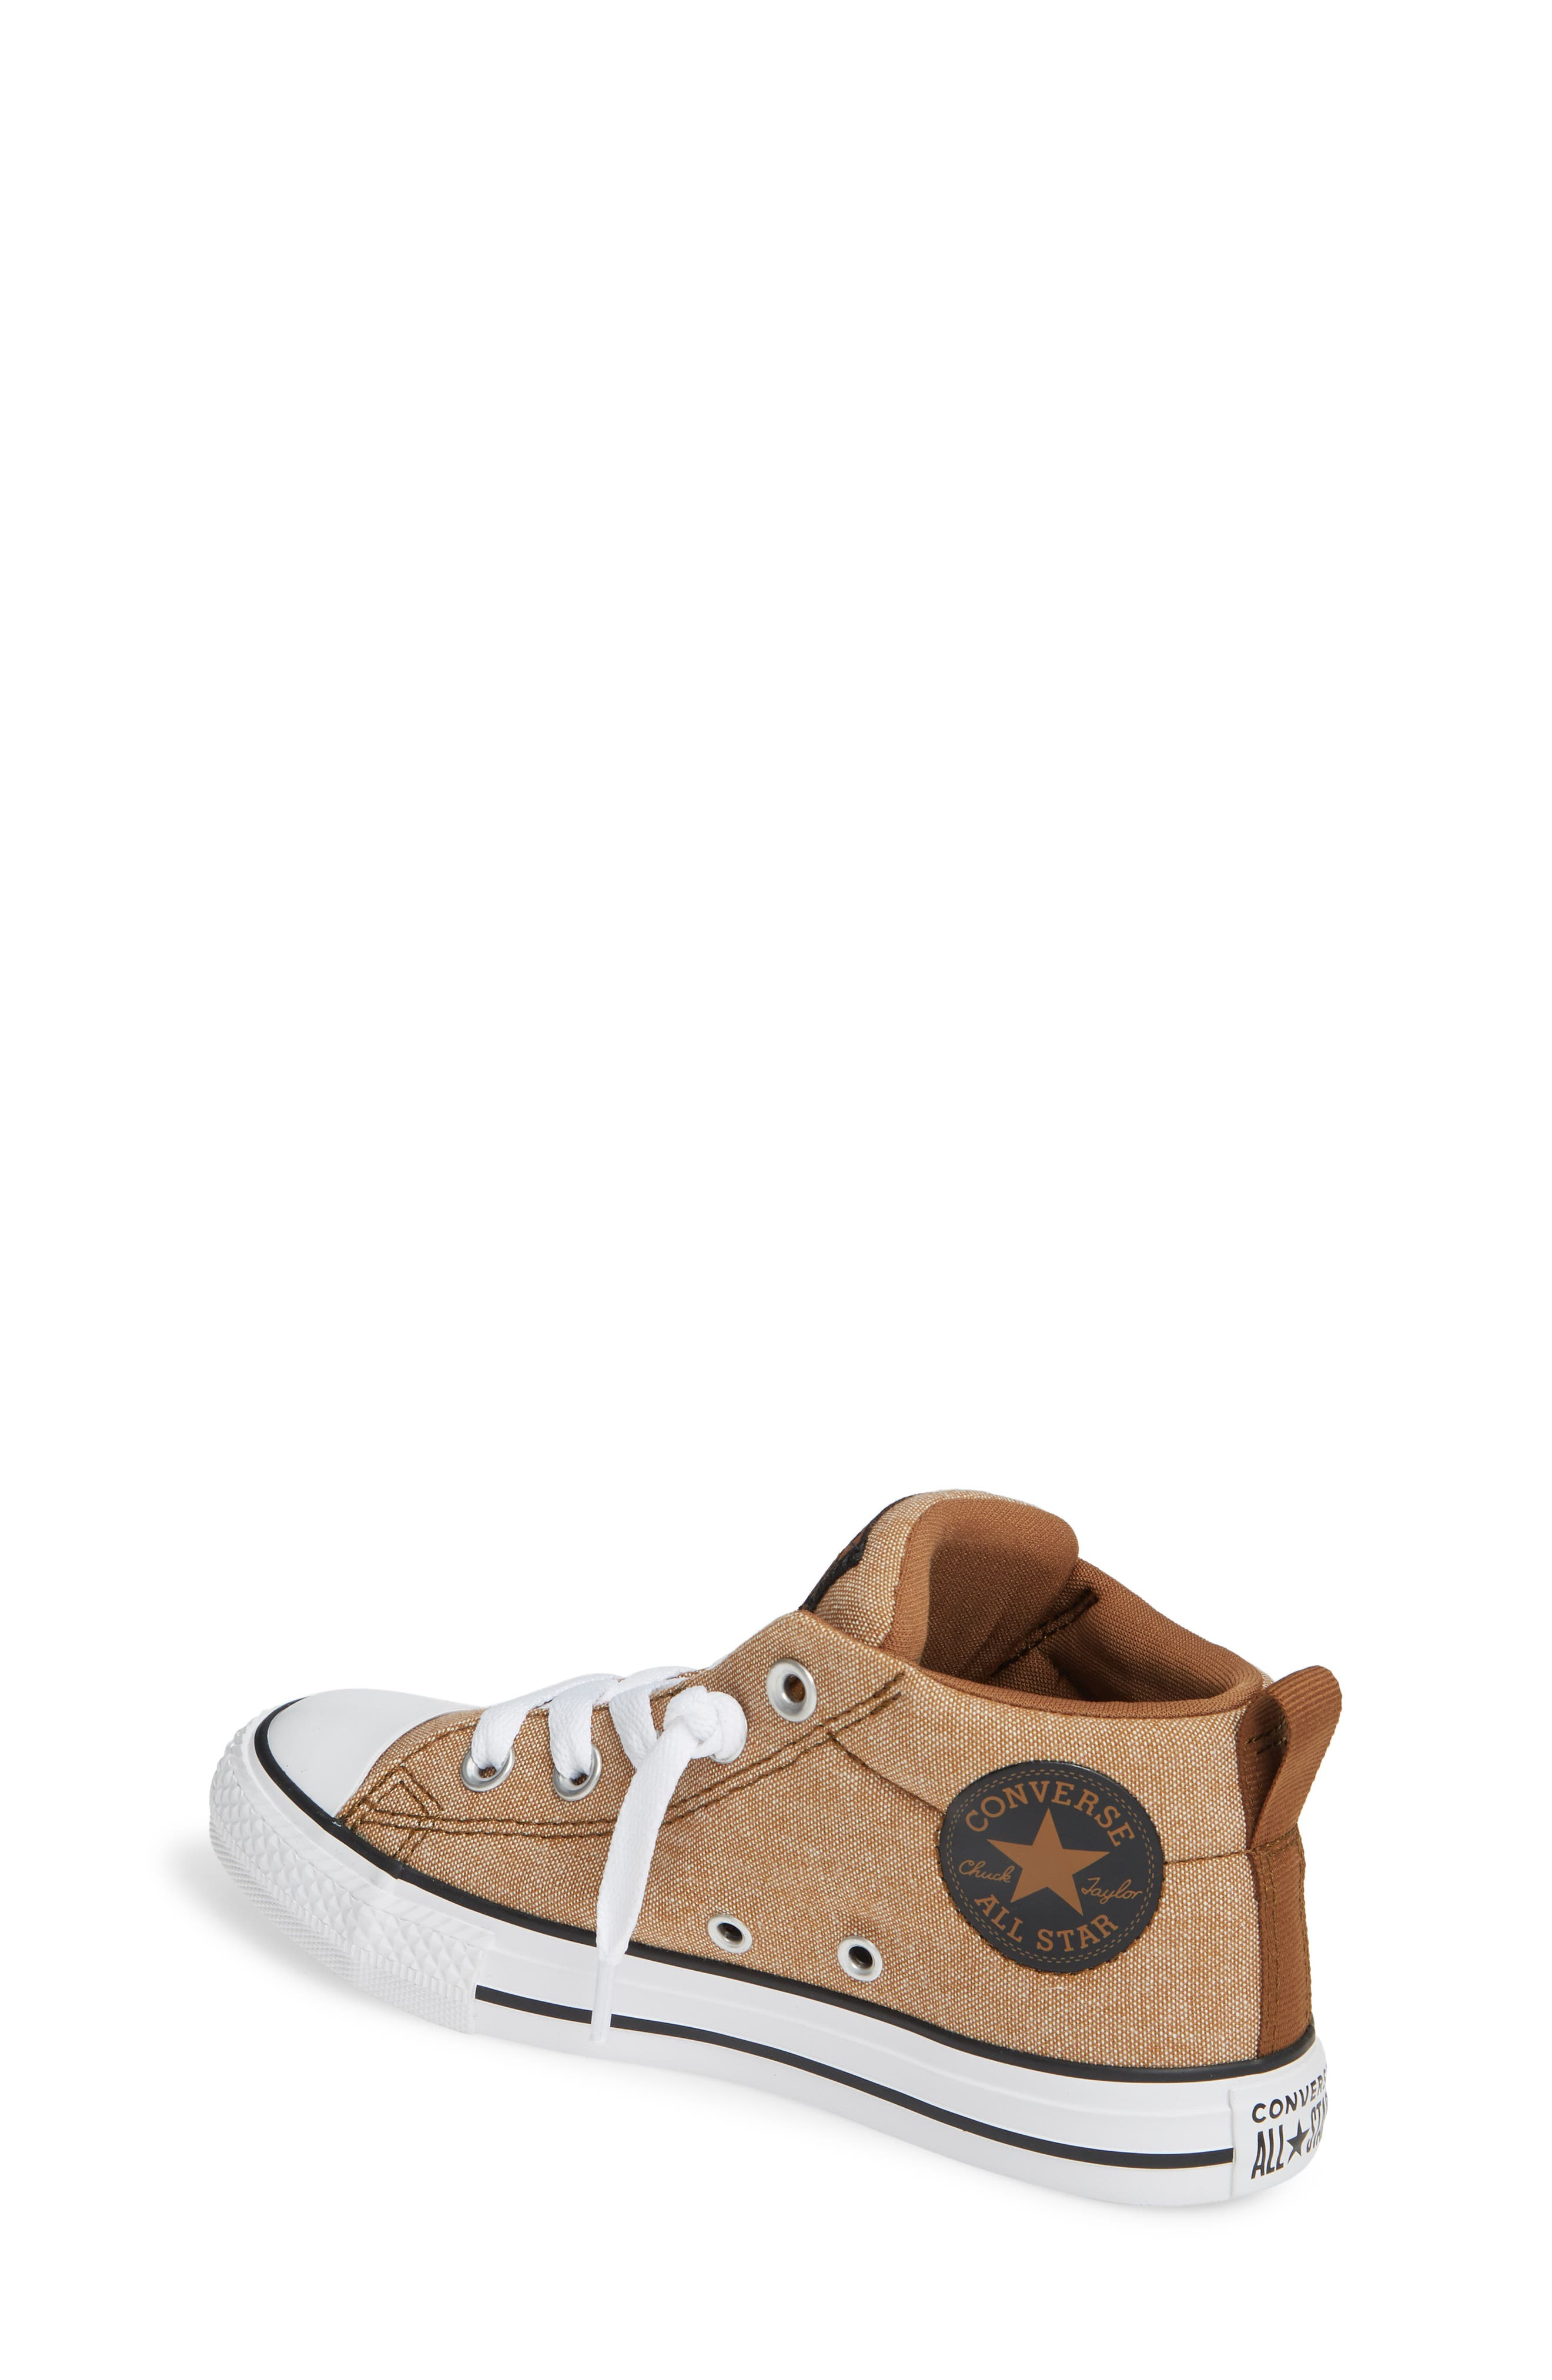 ,                             Chuck Taylor<sup>®</sup> All Star<sup>®</sup> Street Mid Top Sneaker,                             Alternate thumbnail 2, color,                             ALE BROWN/ BLACK/ WHITE